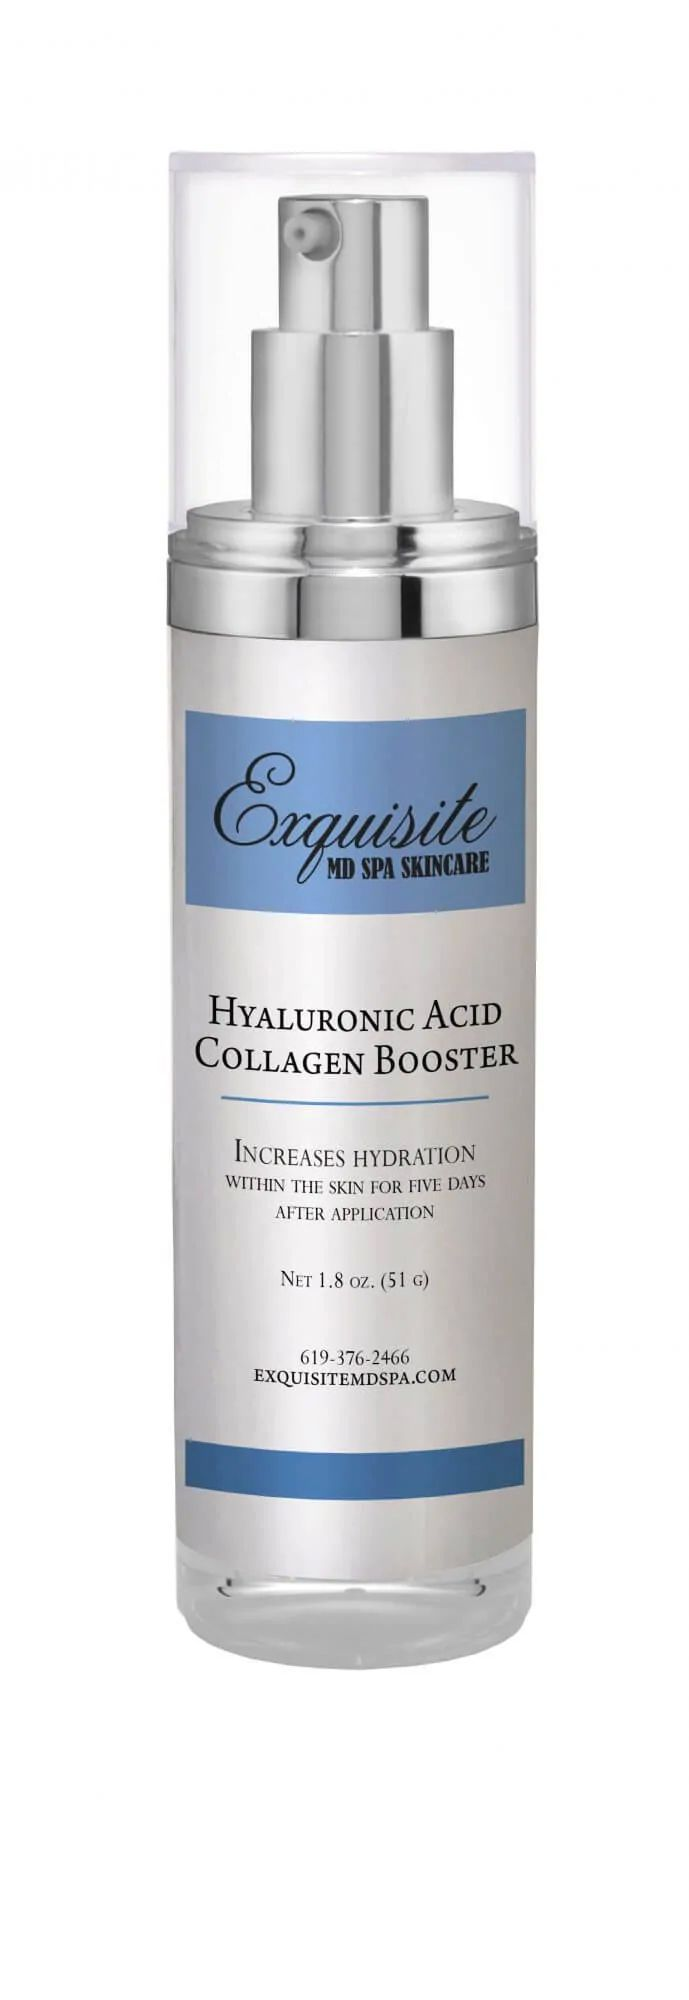 Hyaluronic Acid Collagen Booster